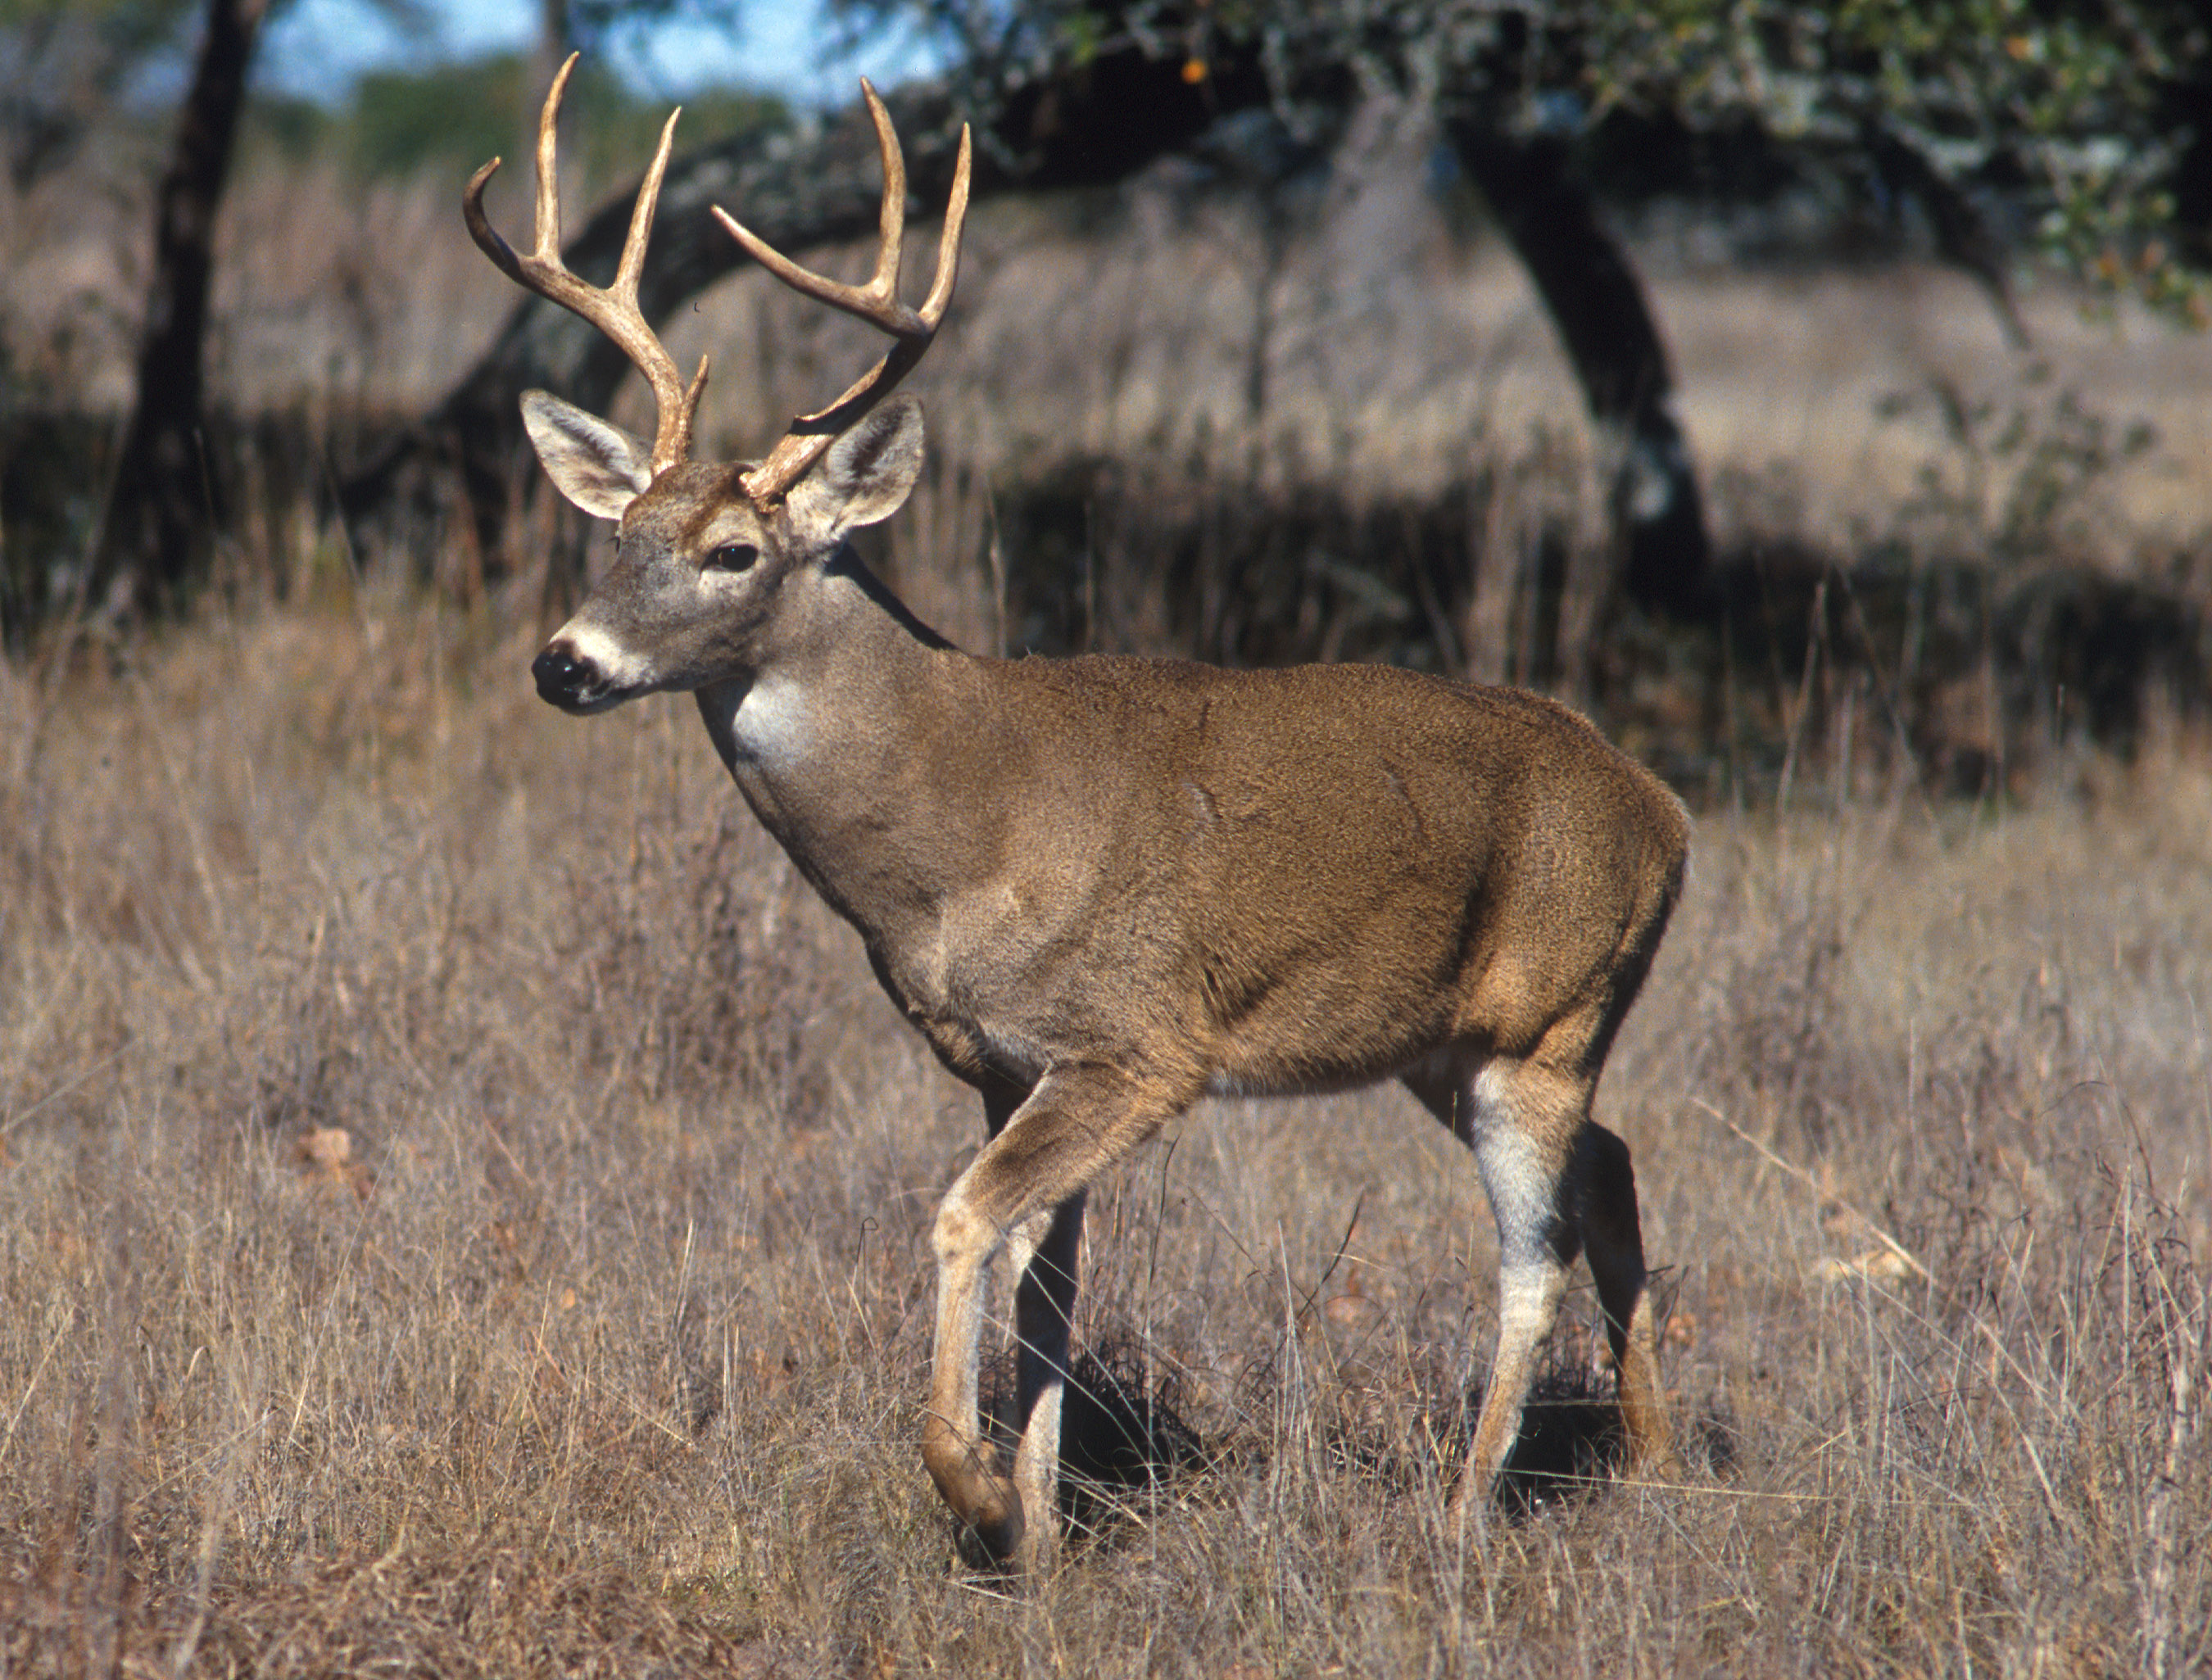 CVM researcher develops tool to improve Chronic Wasting Disease resistance in white-tailed deer